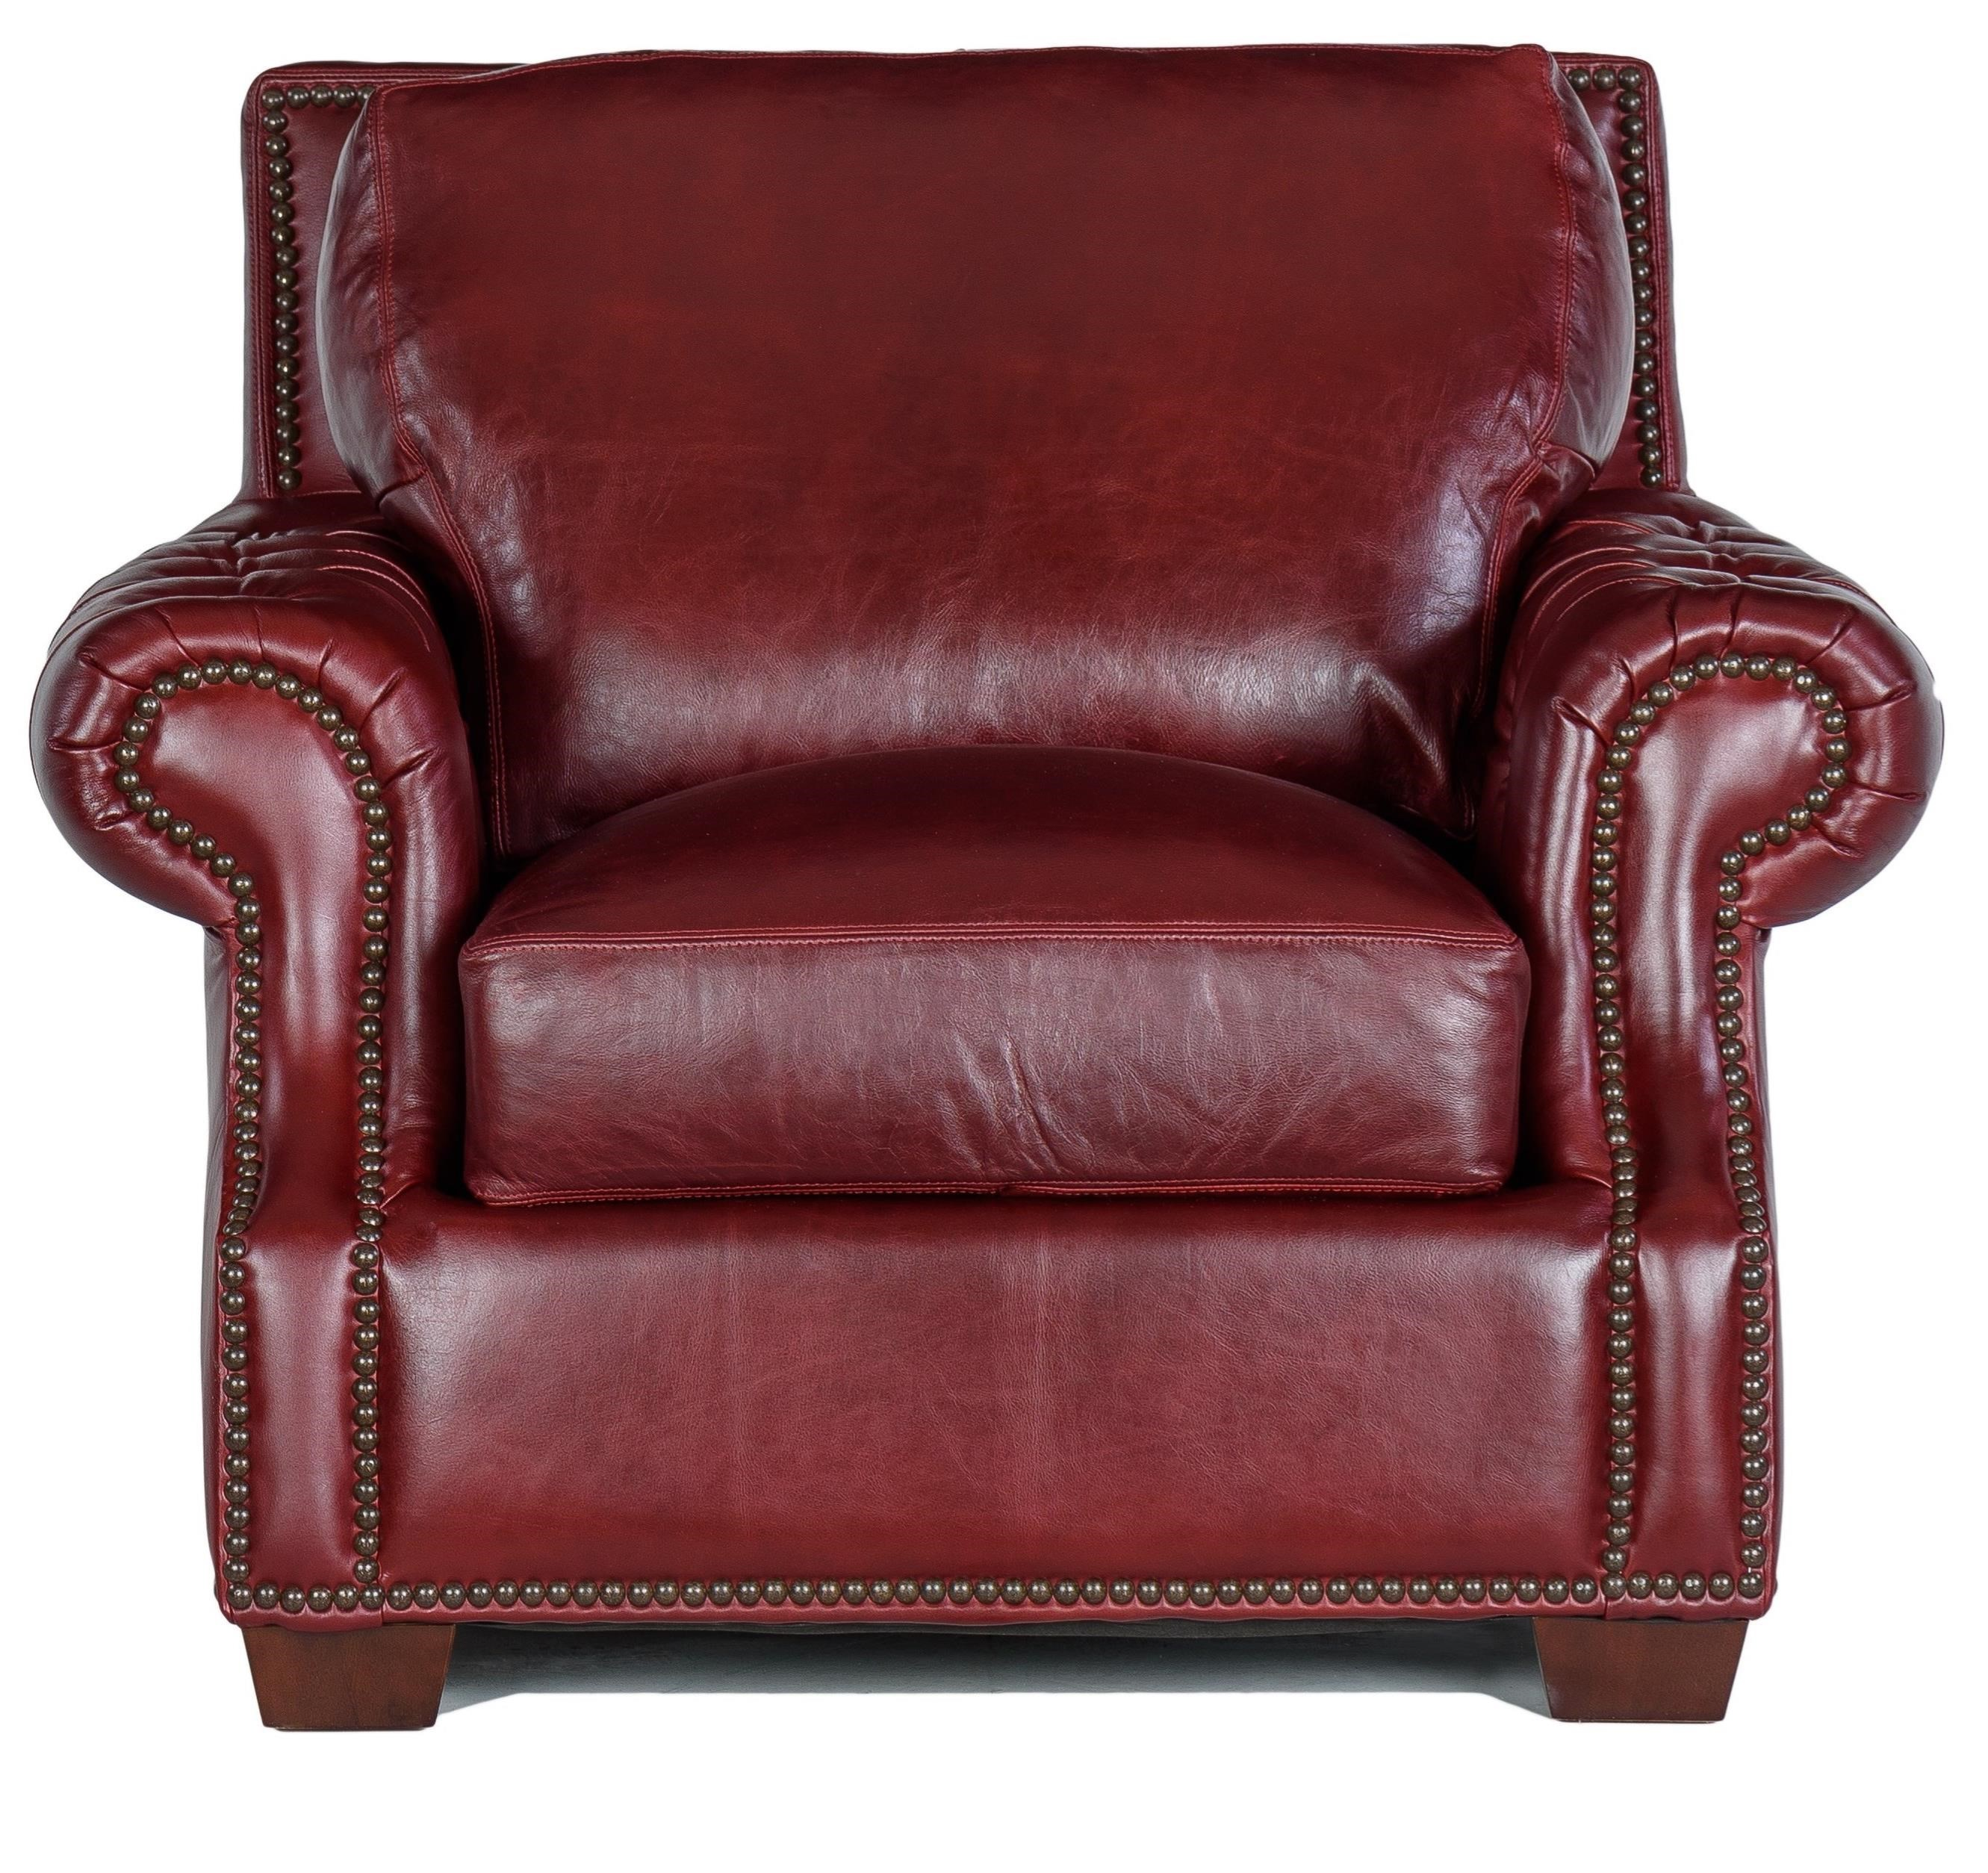 7655 Chair by USA Premium Leather at Dream Home Interiors